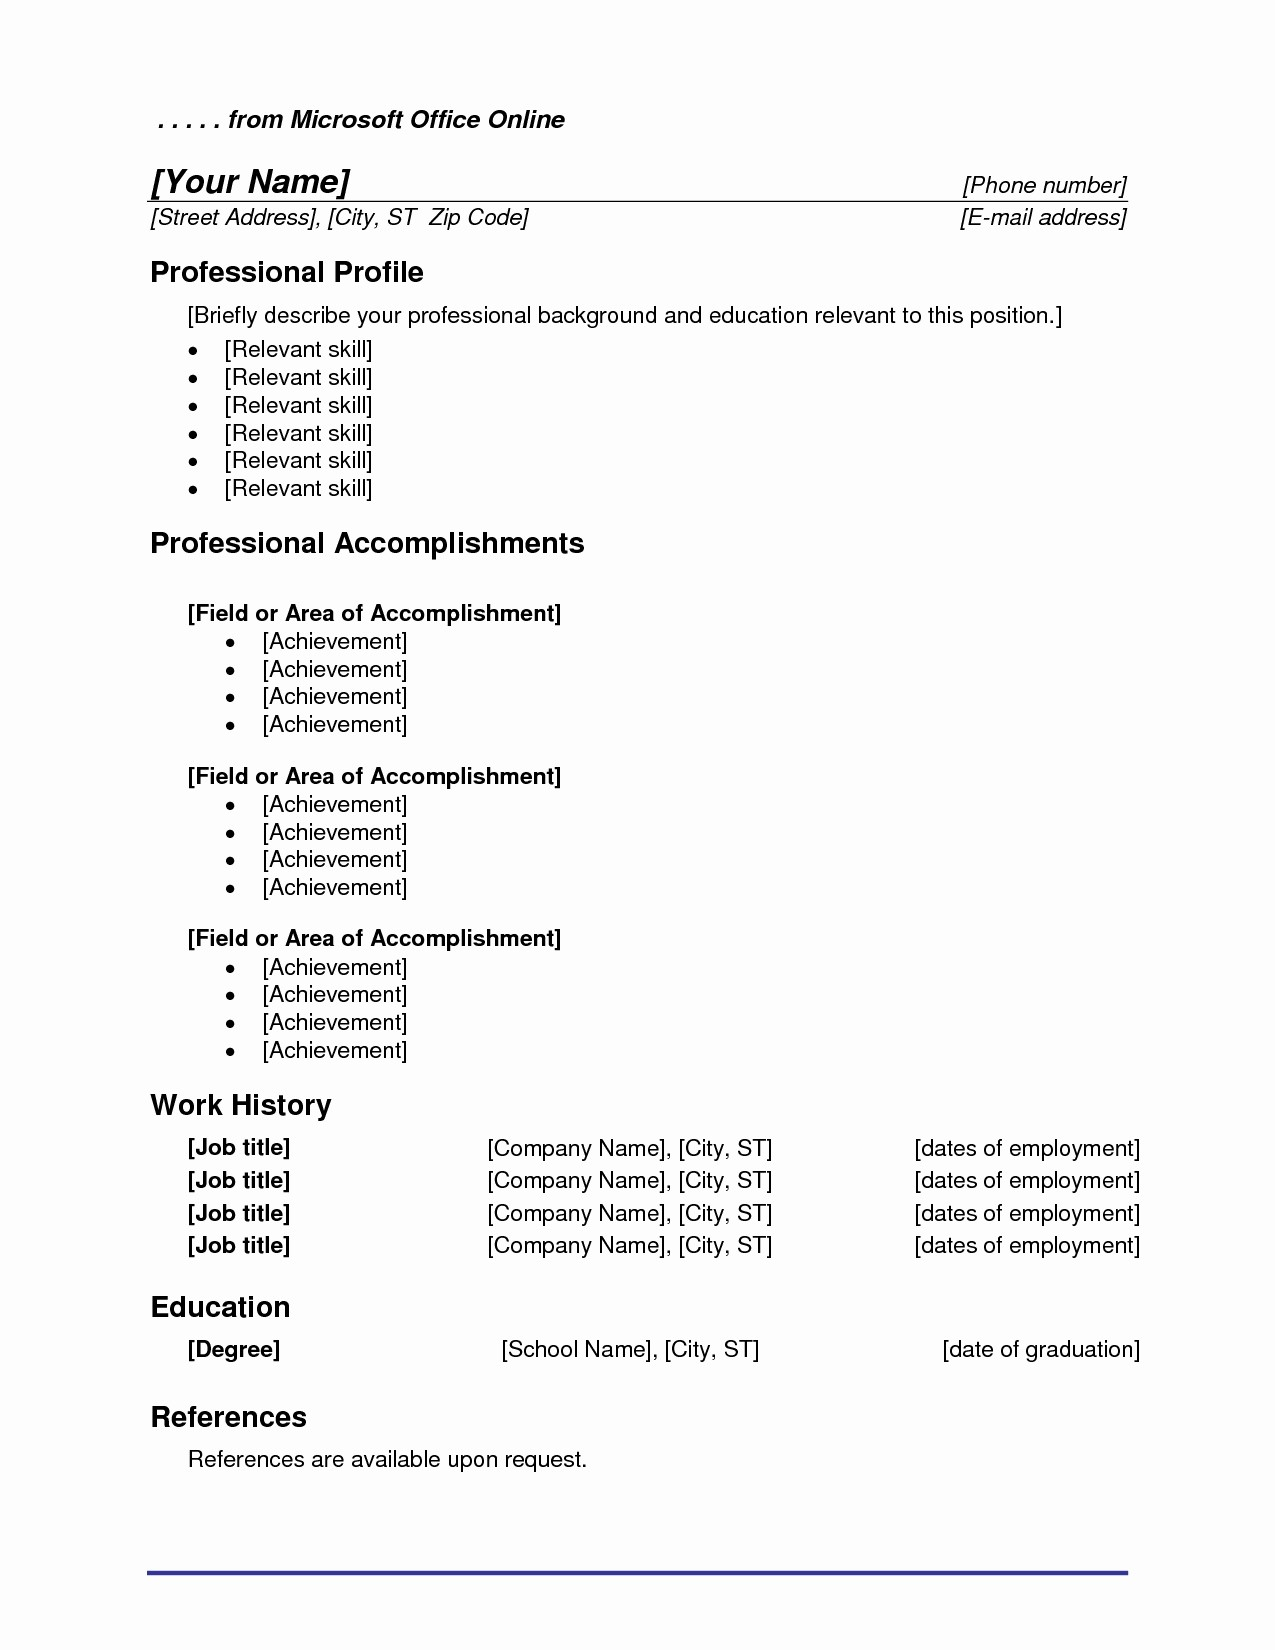 Ms Word Templates for Resume Fresh Microsoft Fice Resume Templates Beepmunk